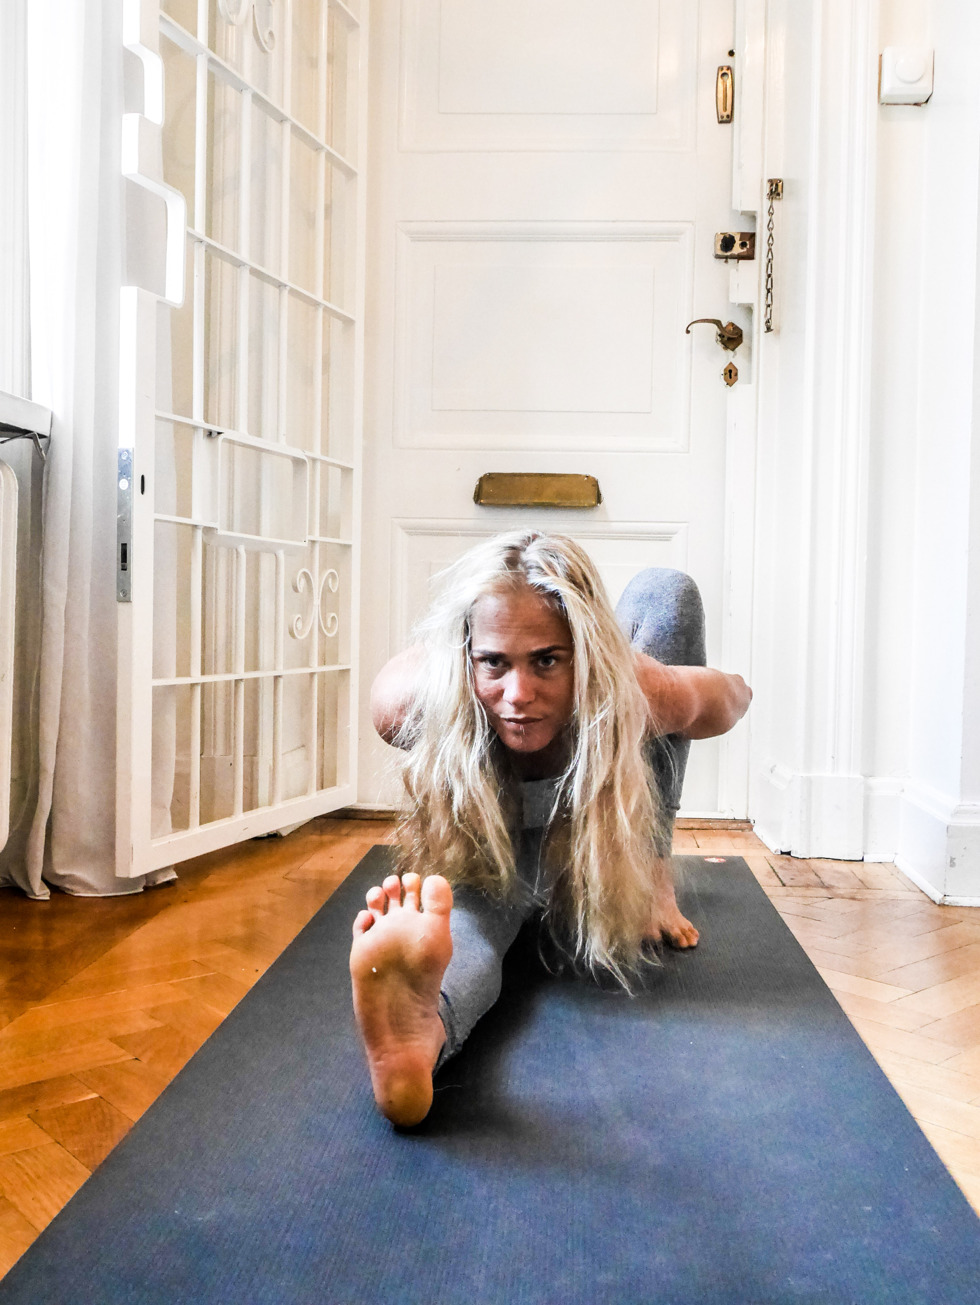 Yoga mot stress?